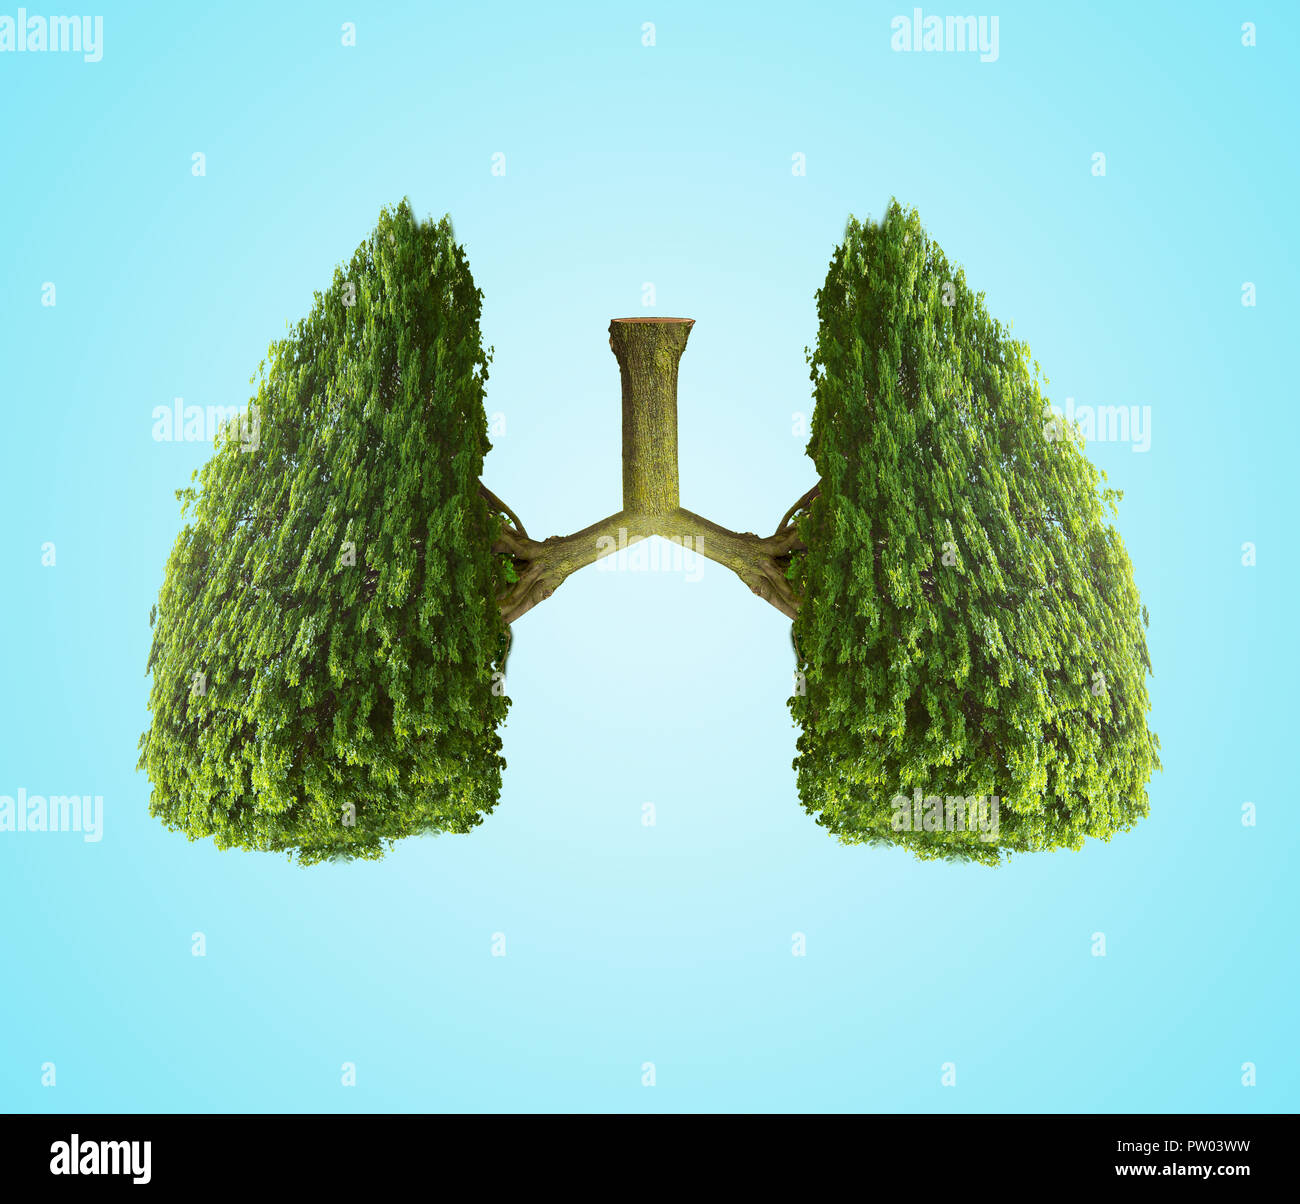 Concept Two 2 Trees resemble a pair of Lungs, Air Quality, Air Pollution, Climate Change, Global Warning - Stock Image